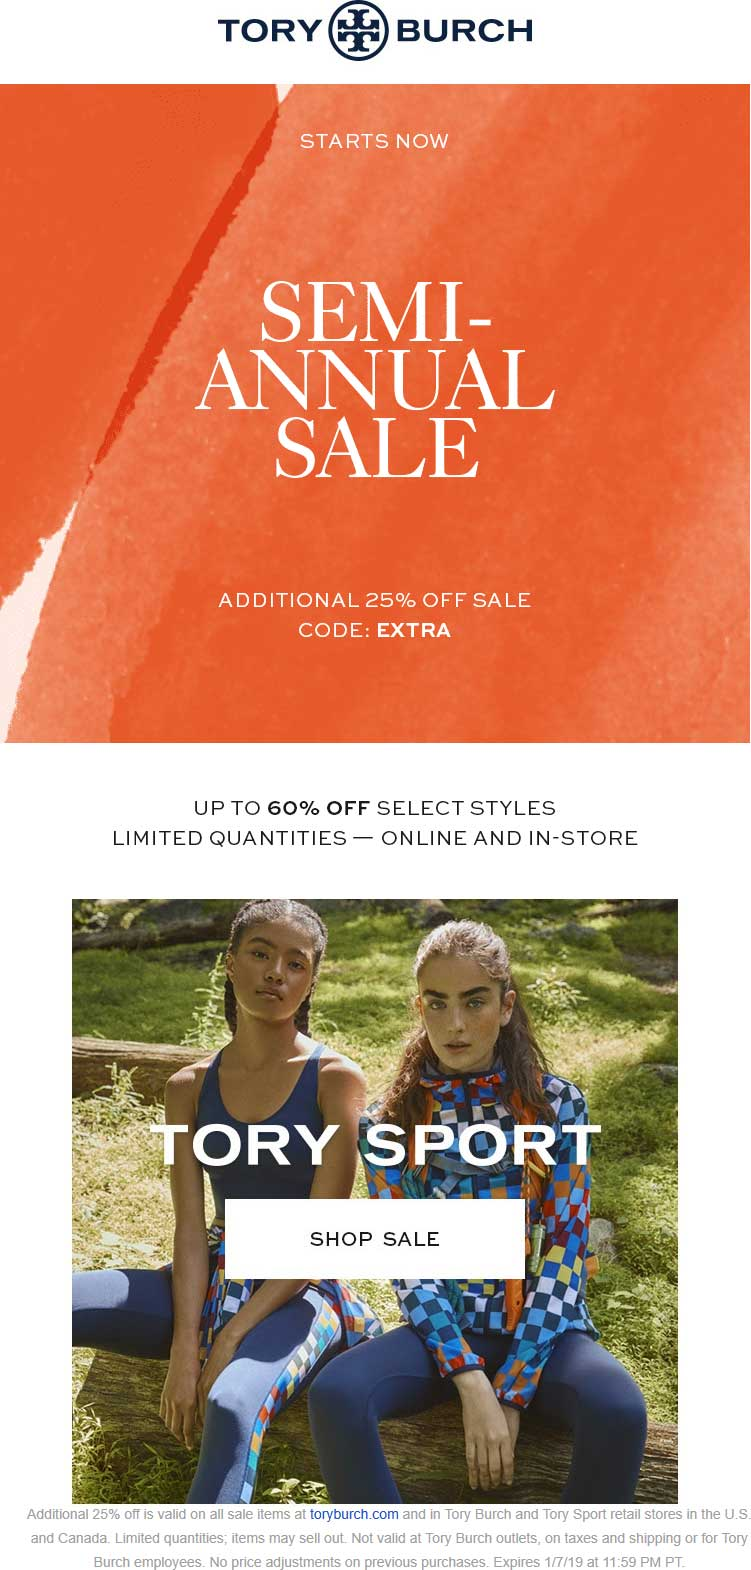 Tory Burch Coupon November 2019 Extra 25% off sale items at Tory Burch, or online via promo code EXTRA